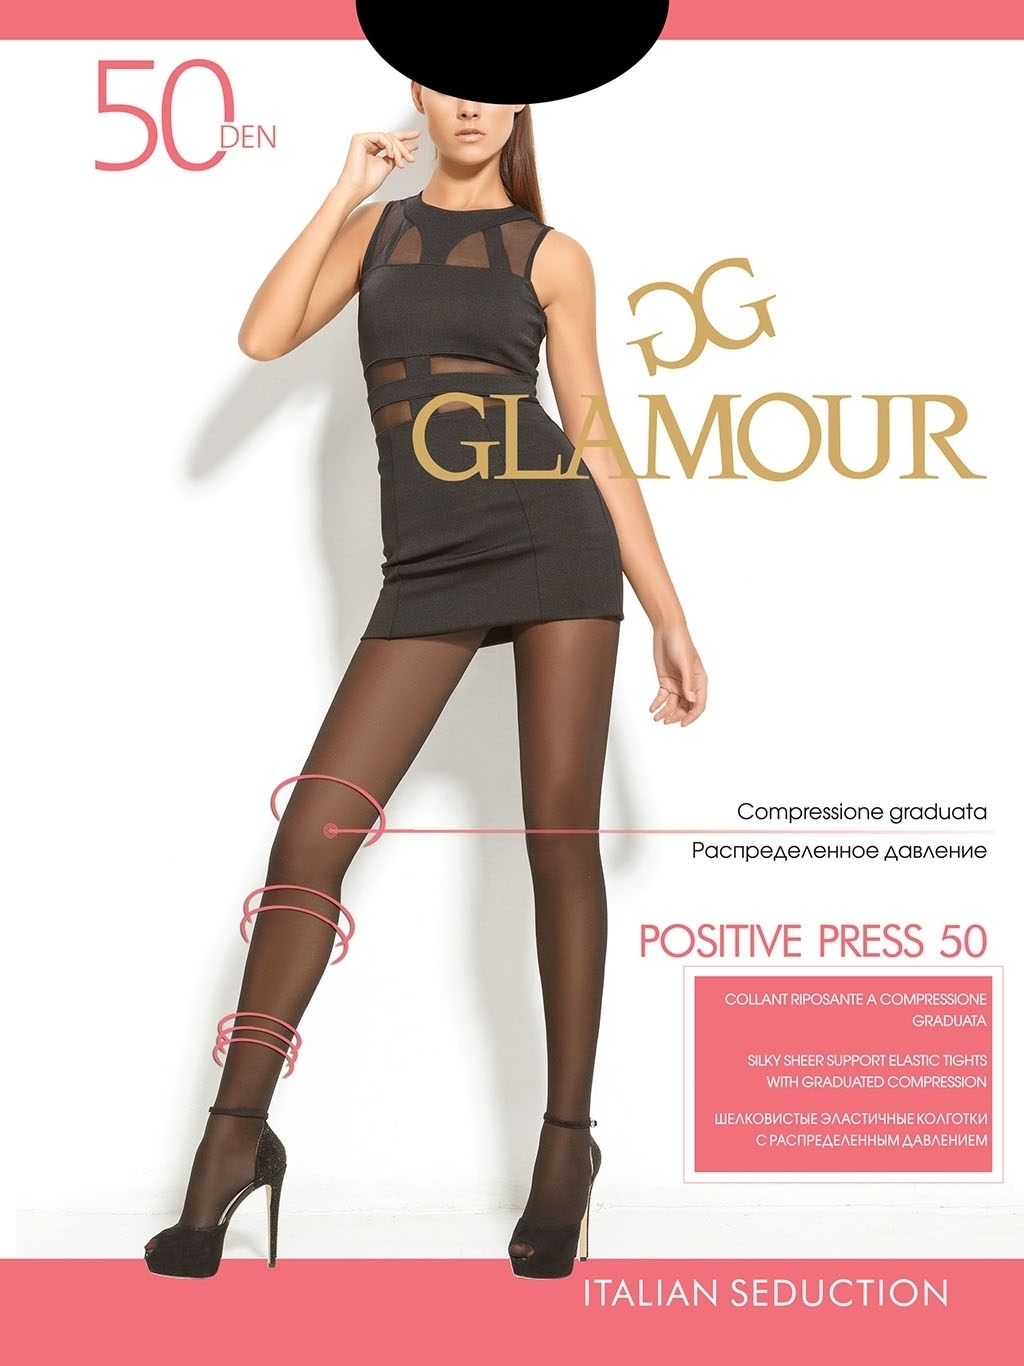 GLAMOUR Positive Press 50